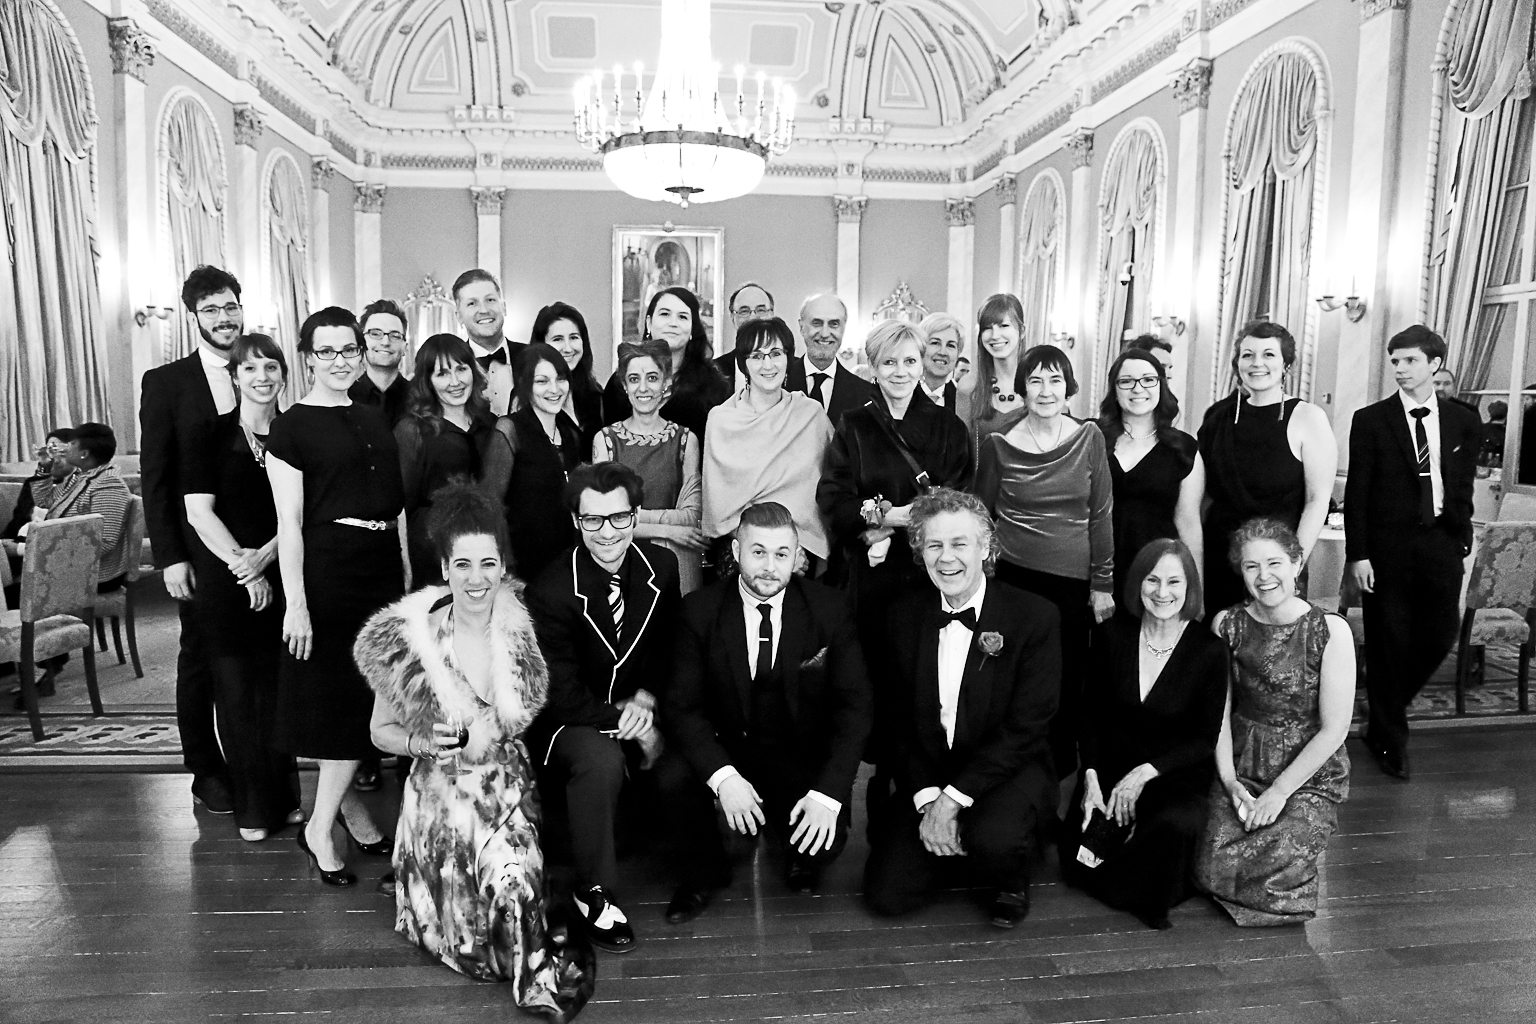 uOttawa Department of Visual Arts Faculty, Alumni, Graduates, Students, and friends including2014 Governor General Awards Laureates Carol Wainio and Max Dean